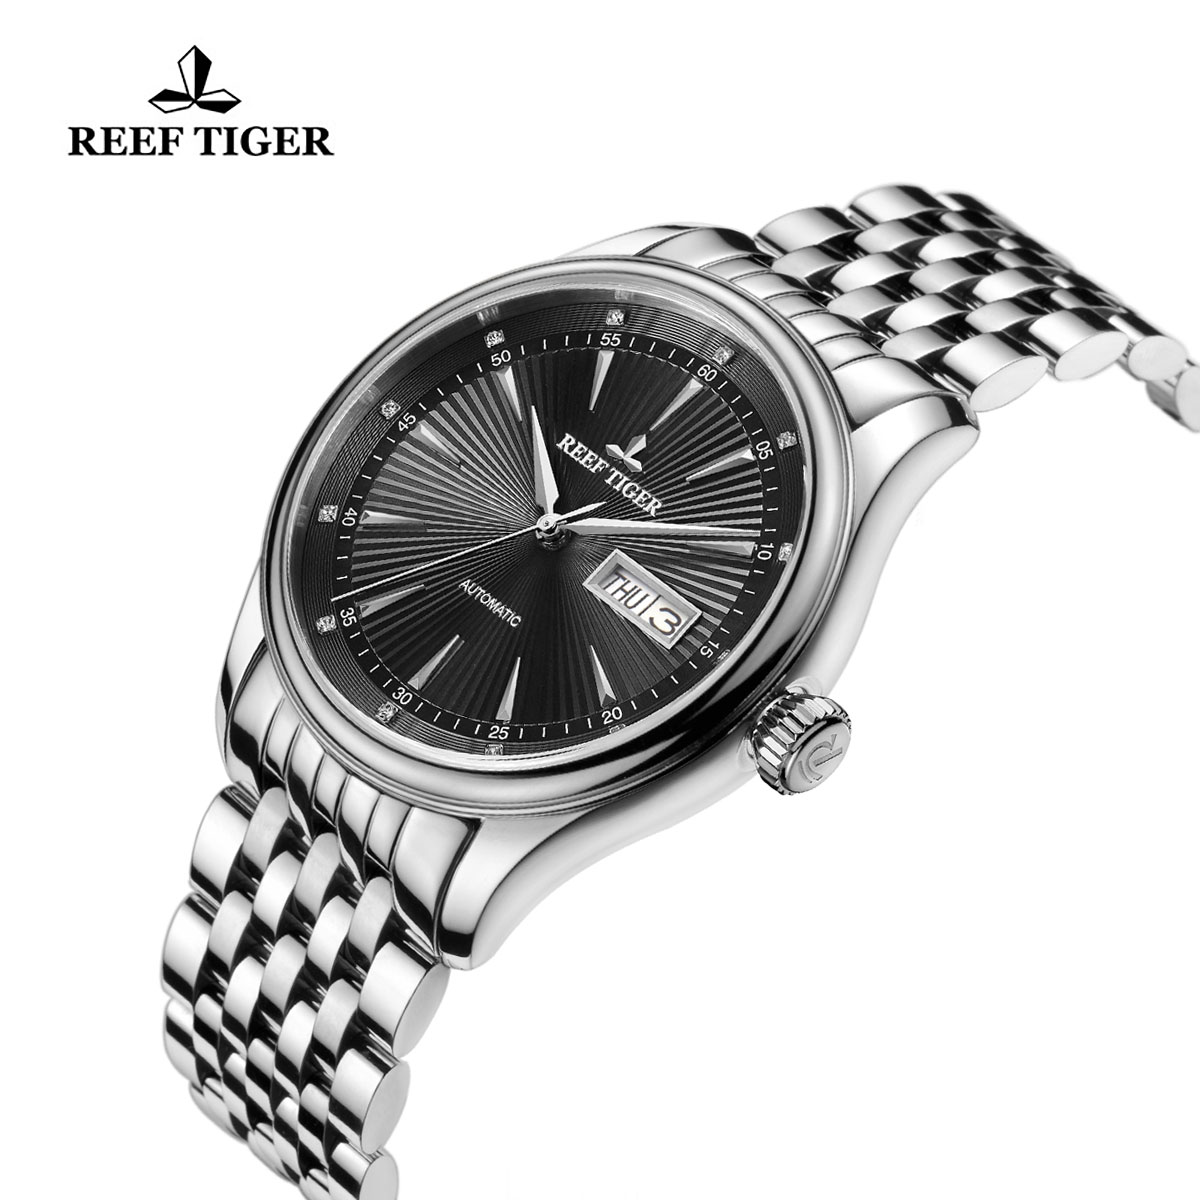 Reef Tiger Heritage II Dress Watch Automatic Black Dial Steel Case RGA8232-YBY